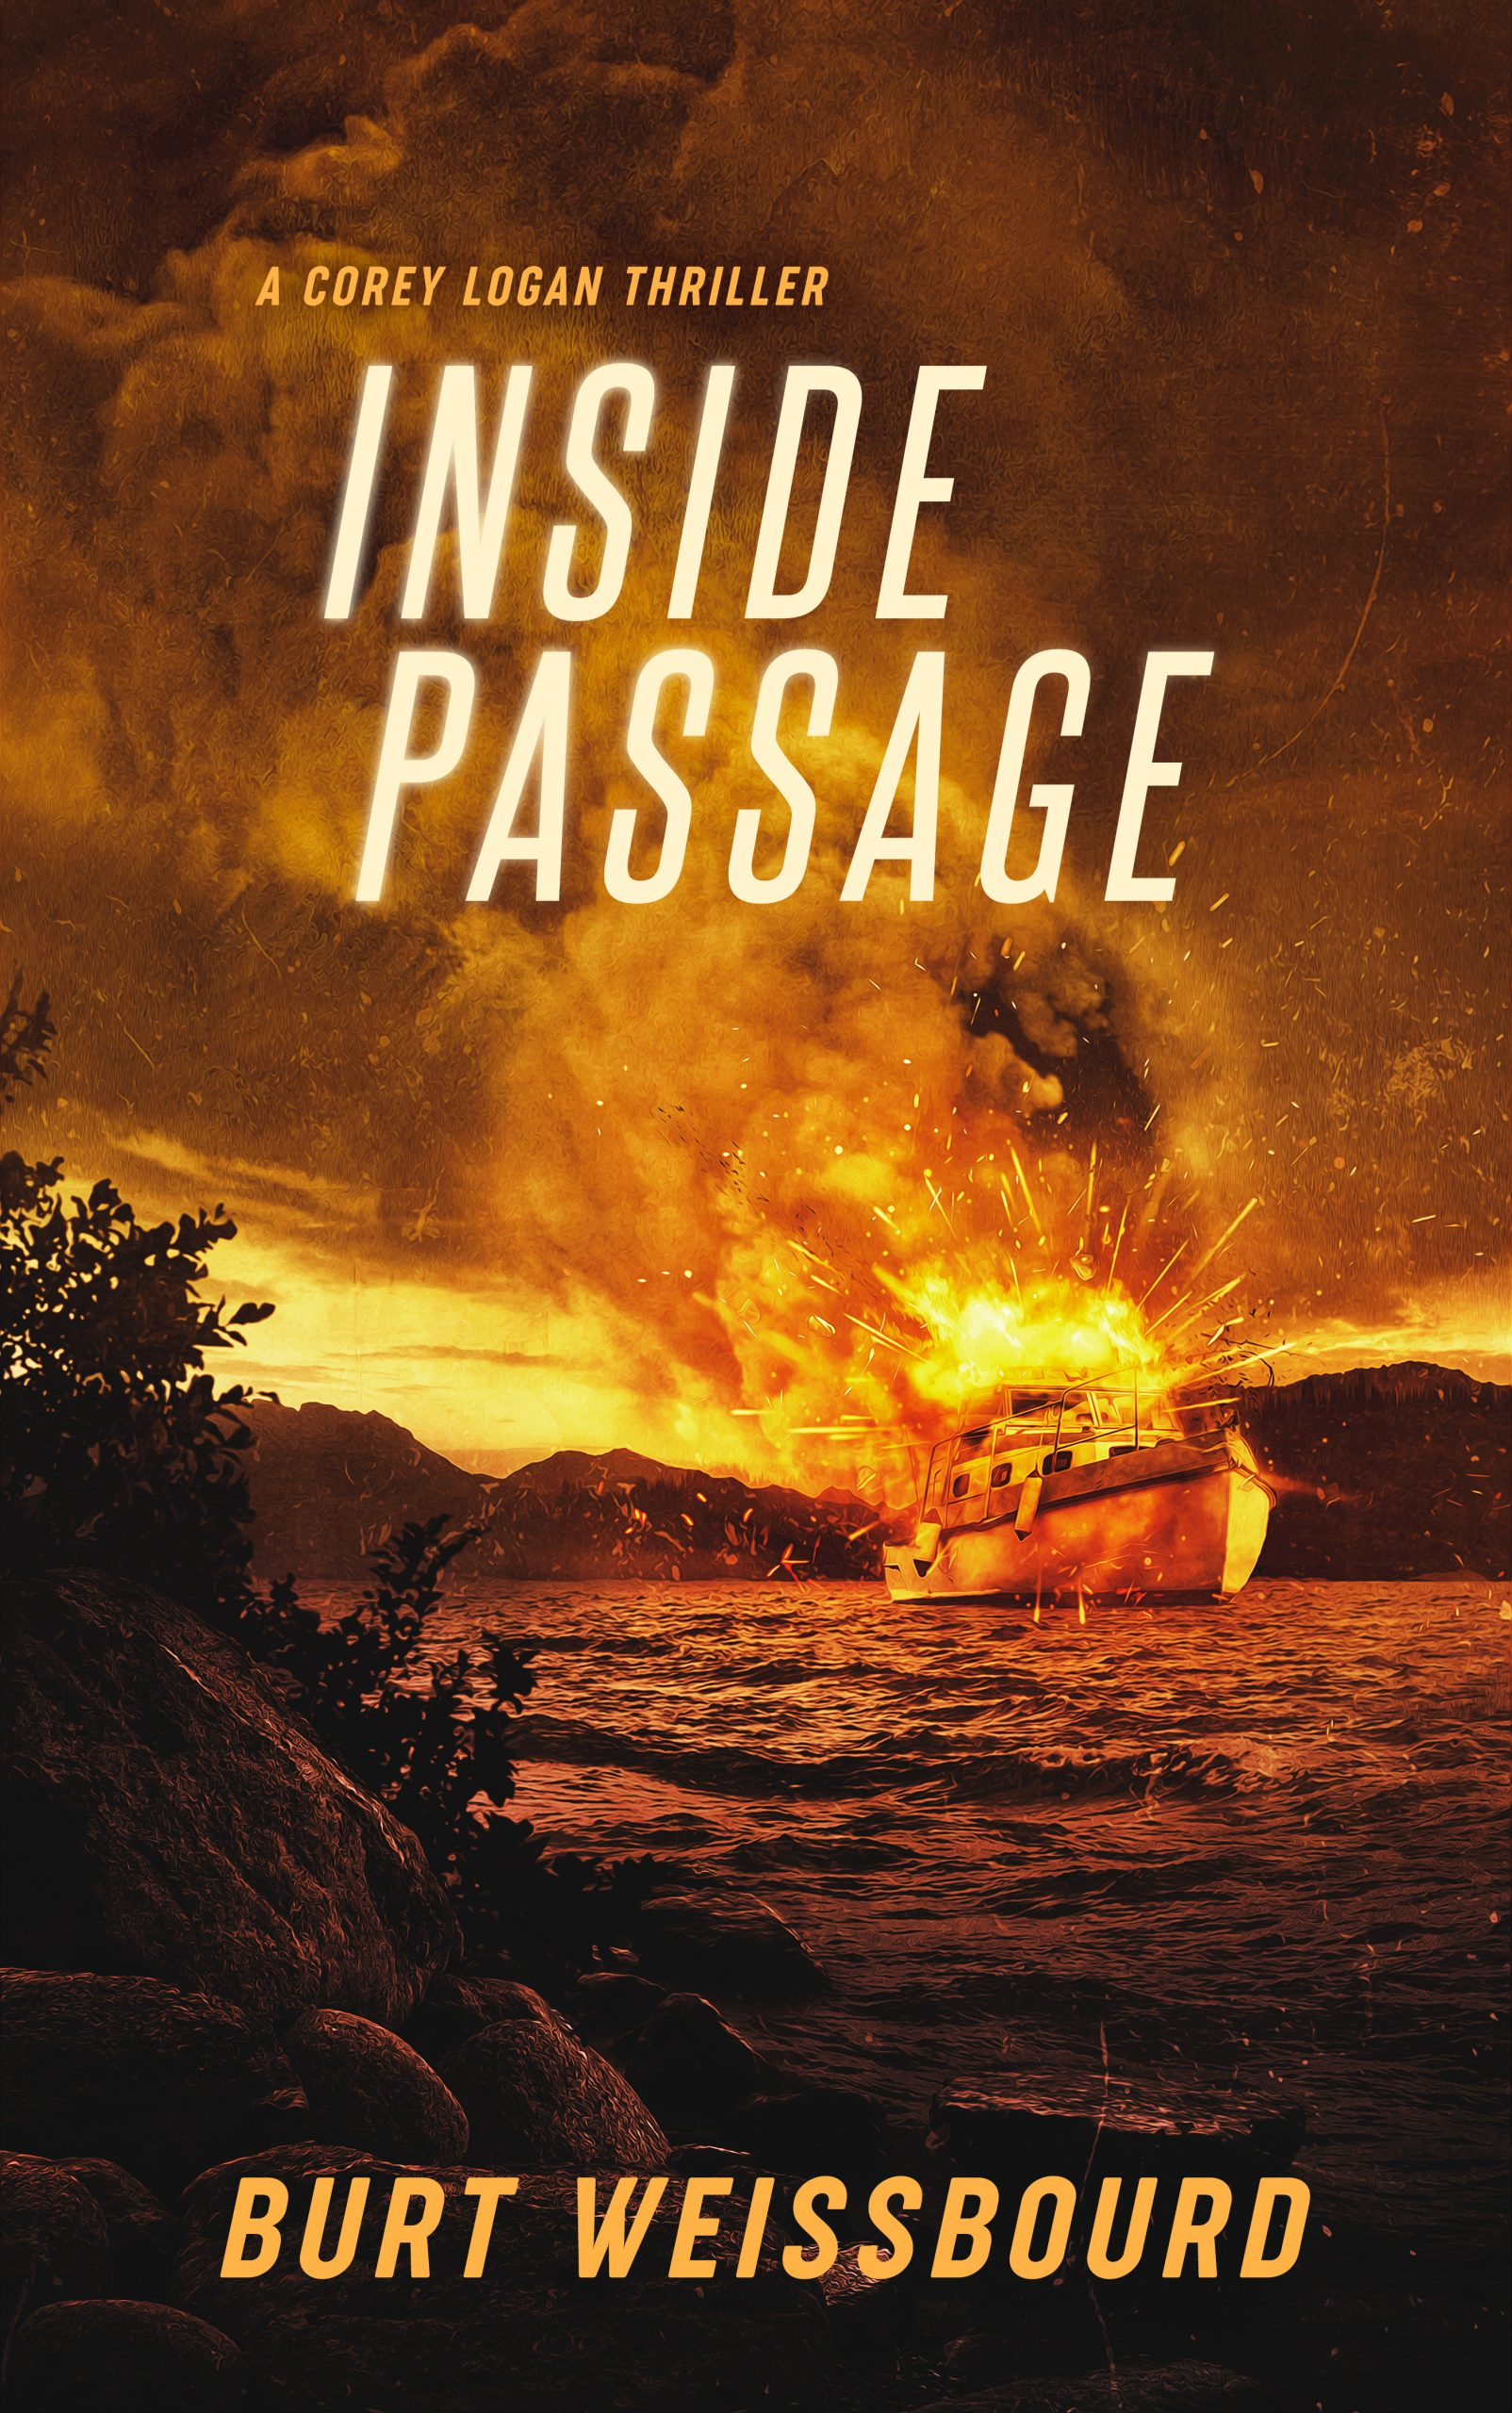 Inside Passage by Burt Weissbourd